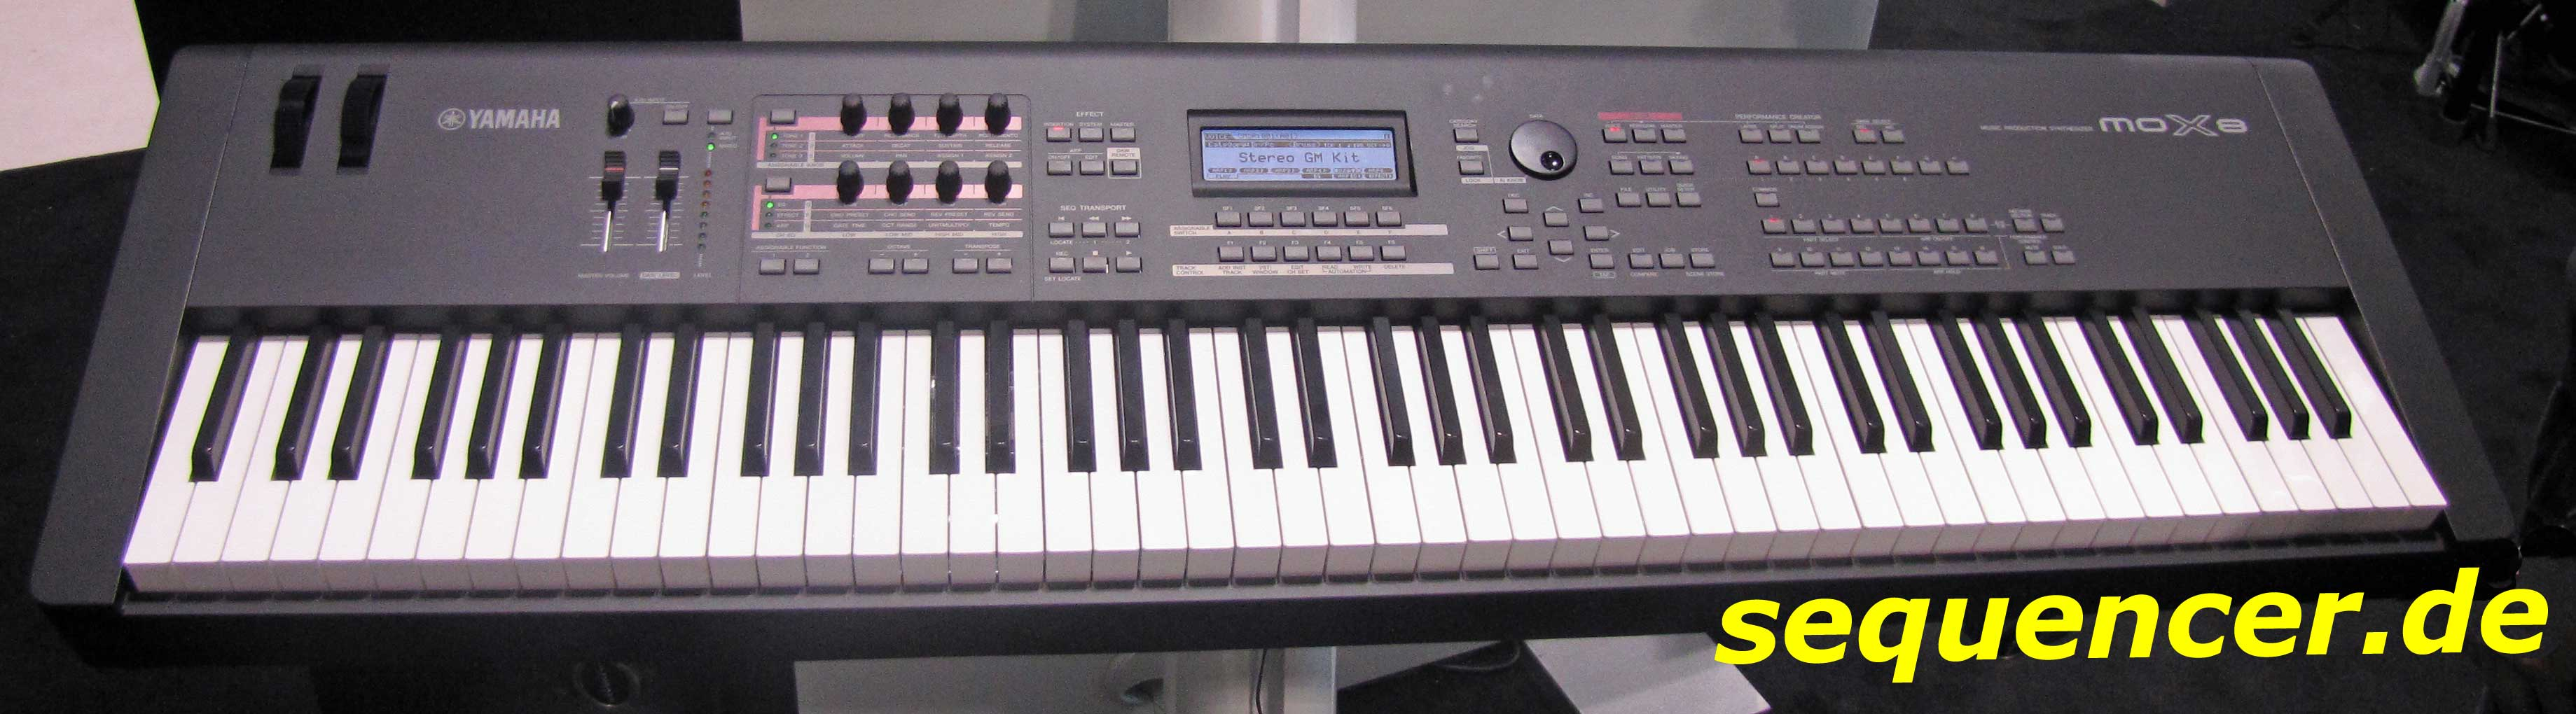 Yamaha MOX6, MOX7, MOX8 synthesizer